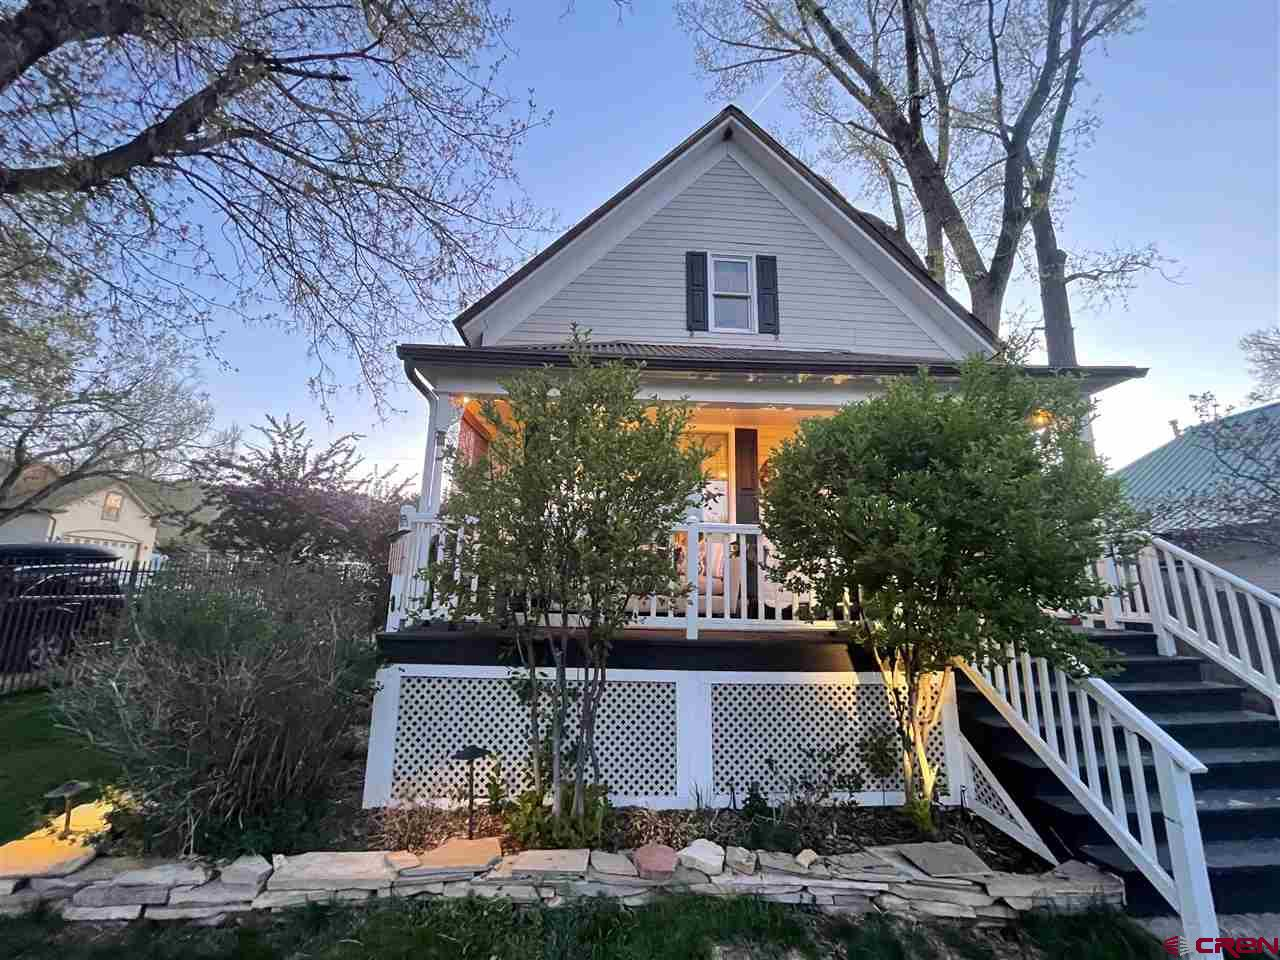 Unique, fully renovated, historical home in the center of downtown Ridgway. Located on a double corner lot with full Cimarron mountain views. Manicured, sodded lawn with Rainbird Sprinkler system for easy upkeep. The property boast mature trees including apple, cherry, aspen, lilac and cottonwood. There is new steel post fencing in the front and full privacy fencing in the back. New concrete pathways and patio allow for easy snow removal and are great for outdoor dining and entertaining. The firepit and sunshade posts complete this backyard getaway. The entryway has new cast iron hooks & leads to a full laundry room with a sink. Living room includes built in TV cabinetry with large east facing windows with unbeatable mountain views. Sliding French doors lead to a quite reading nook & newly posted deck. Full bathroom w/ clawfoot tub, shower and granite countertops. The kitchen is large, bright and fully renovated with new black stainless appliances, granite countertops, custom glass cabinetry, and a comfortable dining area. Upstairs has a large guest bedroom, flex room, and master bedroom with his and her closets. Master bath has a large jetted tub and walk in shower. There is a large fully finished basement which includes two bedrooms each with their own living room and a 3/4 bath with steam shower. The walk out doorway and lock off option make this space an ideal rental unit for additional income. In-floor heat keep the home cozy all year long. Two car garage has a woodstove and makes for a great workshop. Plenty of attic space for storage.  roof is less than10 years old and hassle free.